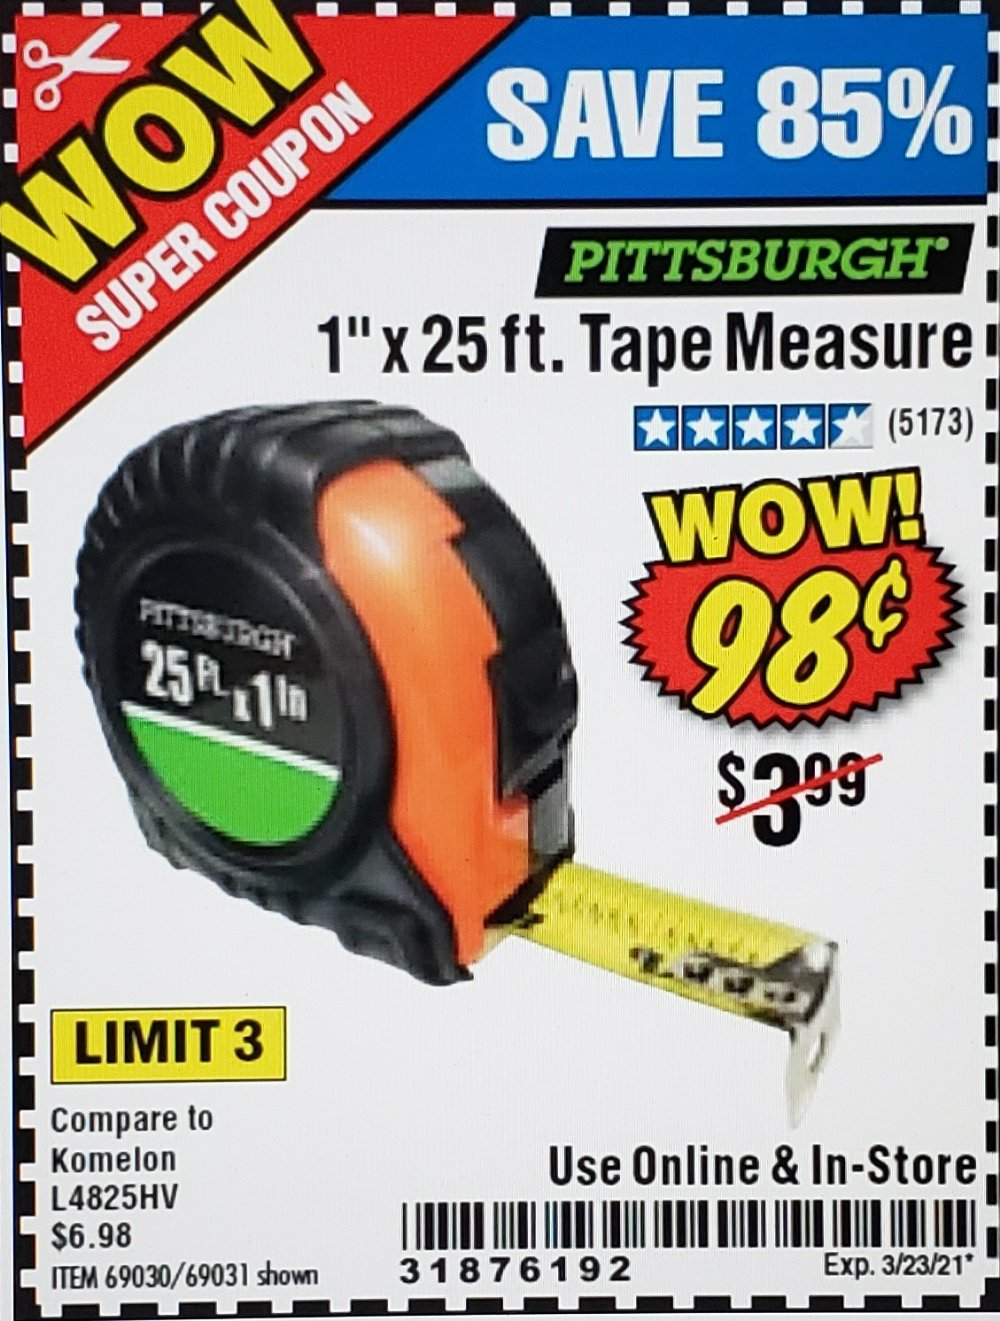 Harbor Freight Coupon, HF Coupons - 1